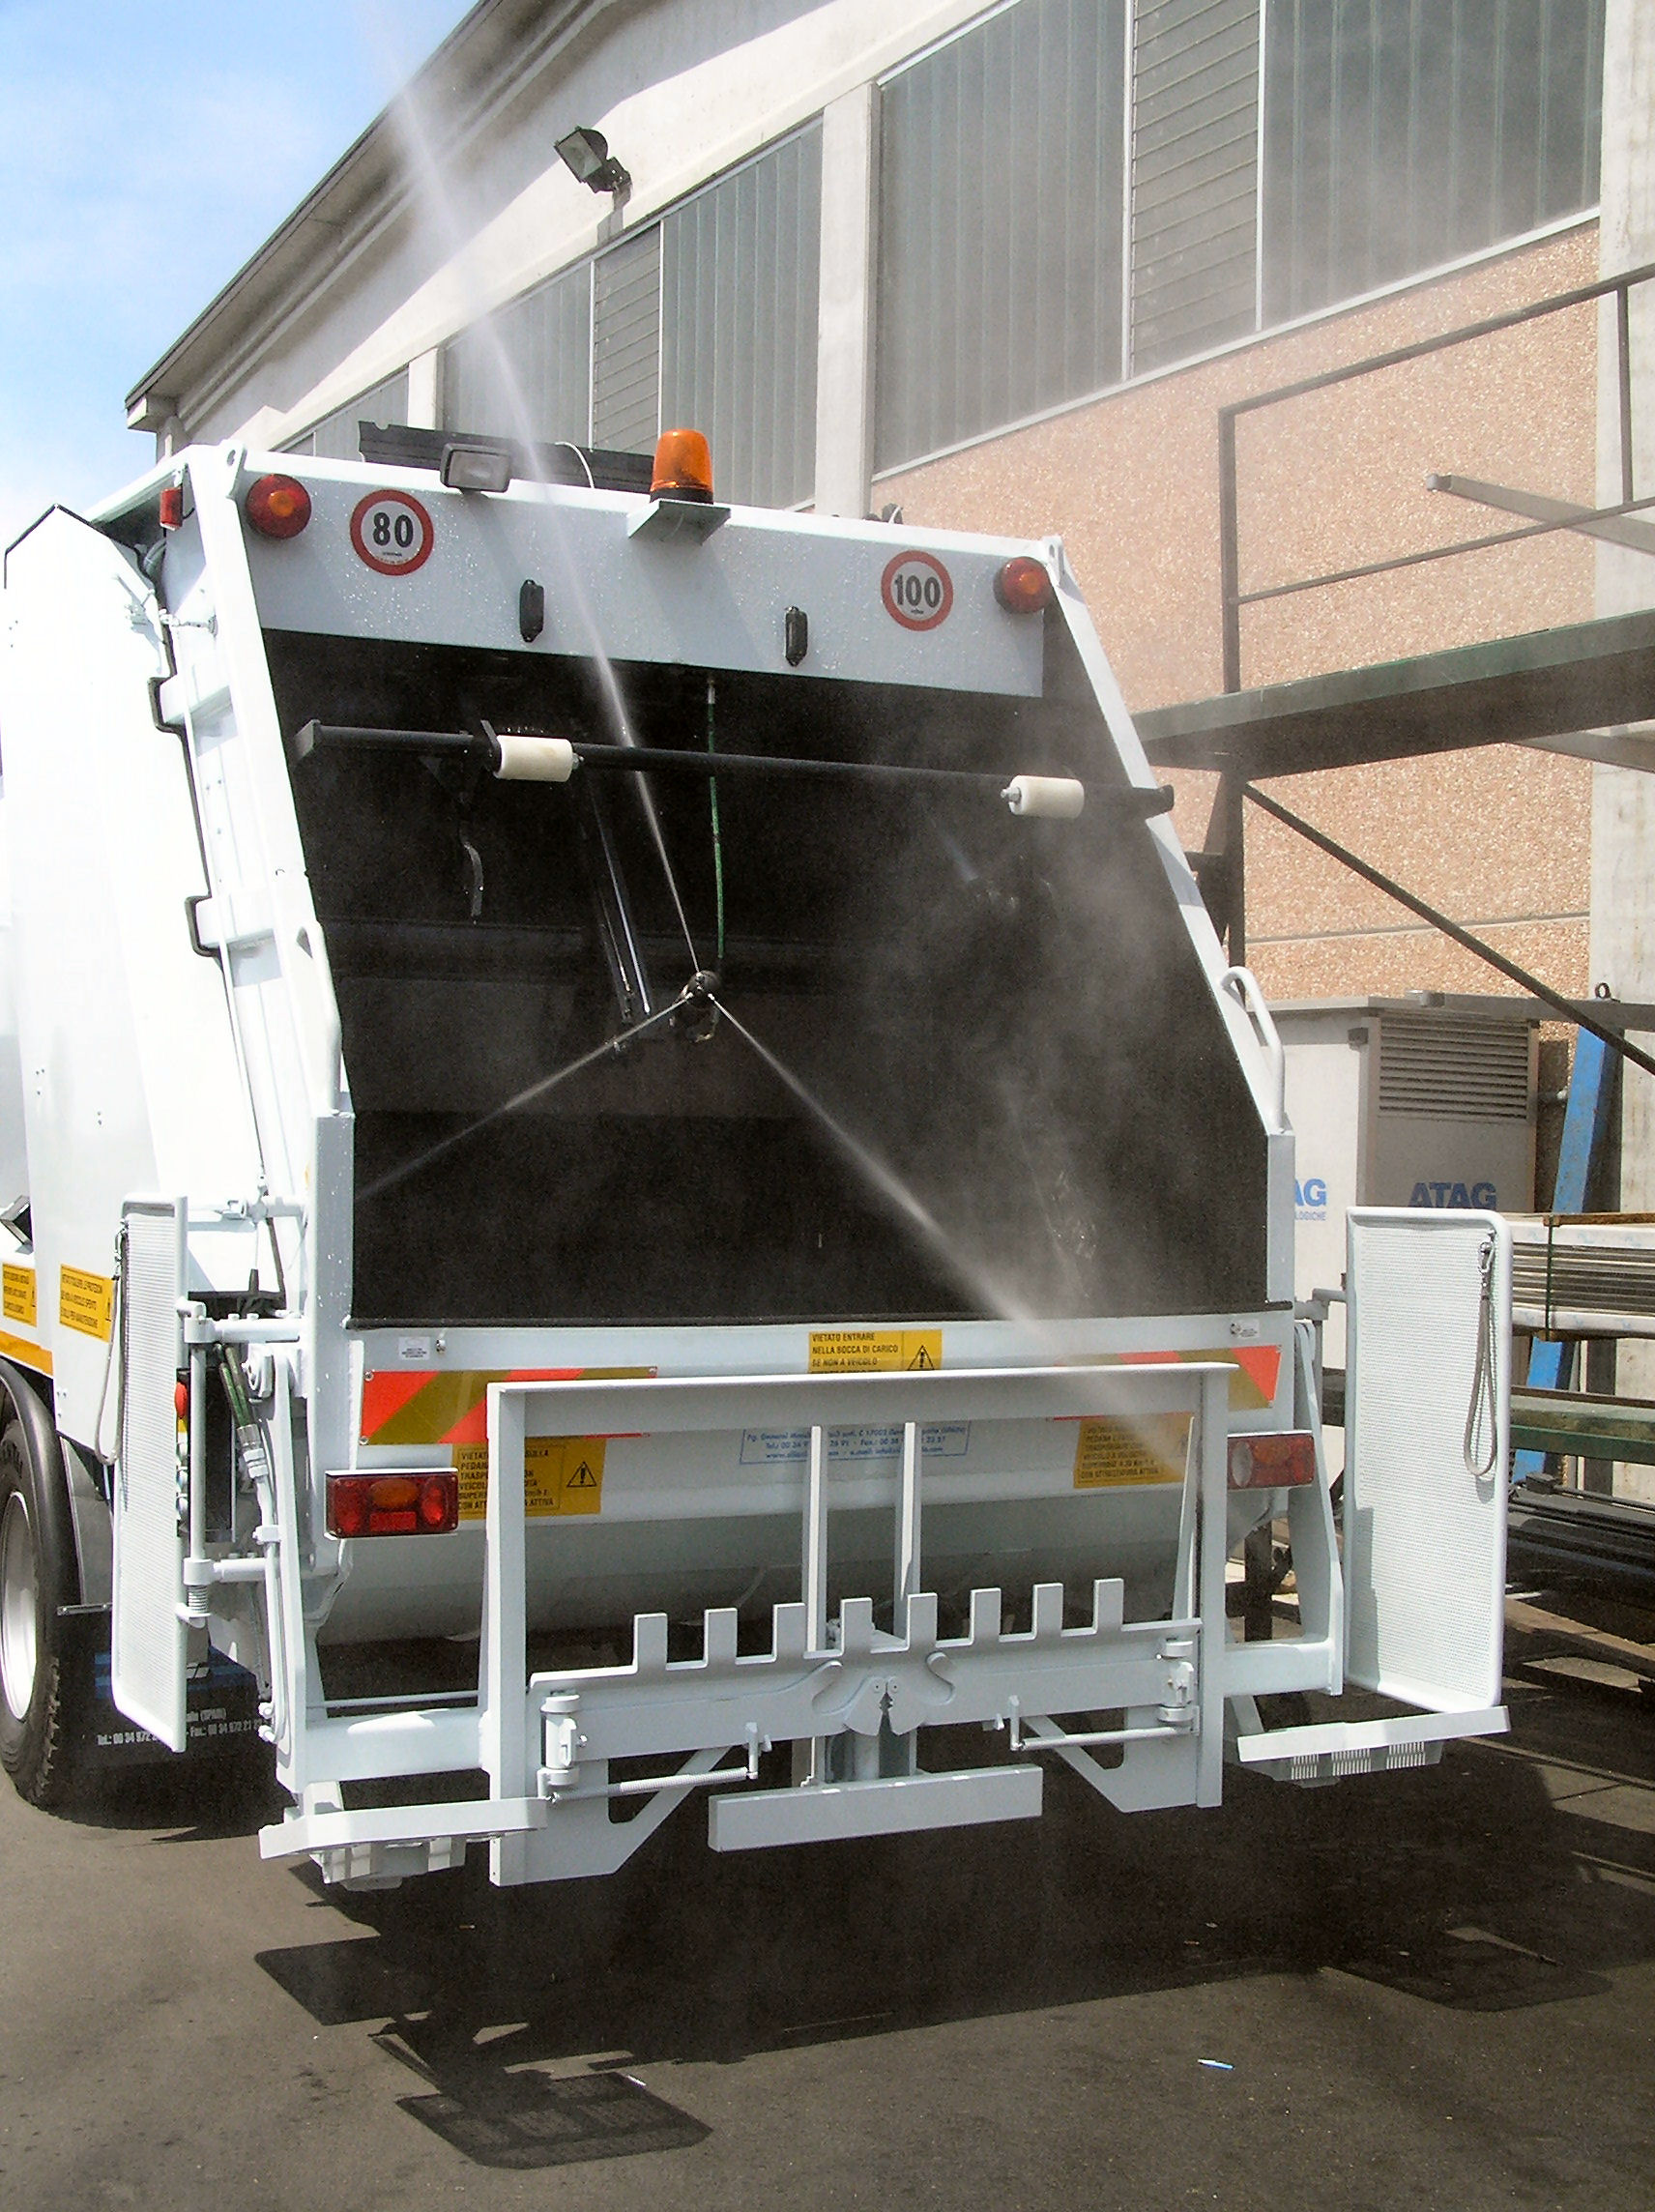 Ecopac Garbage Collector Ziliani Service S R L